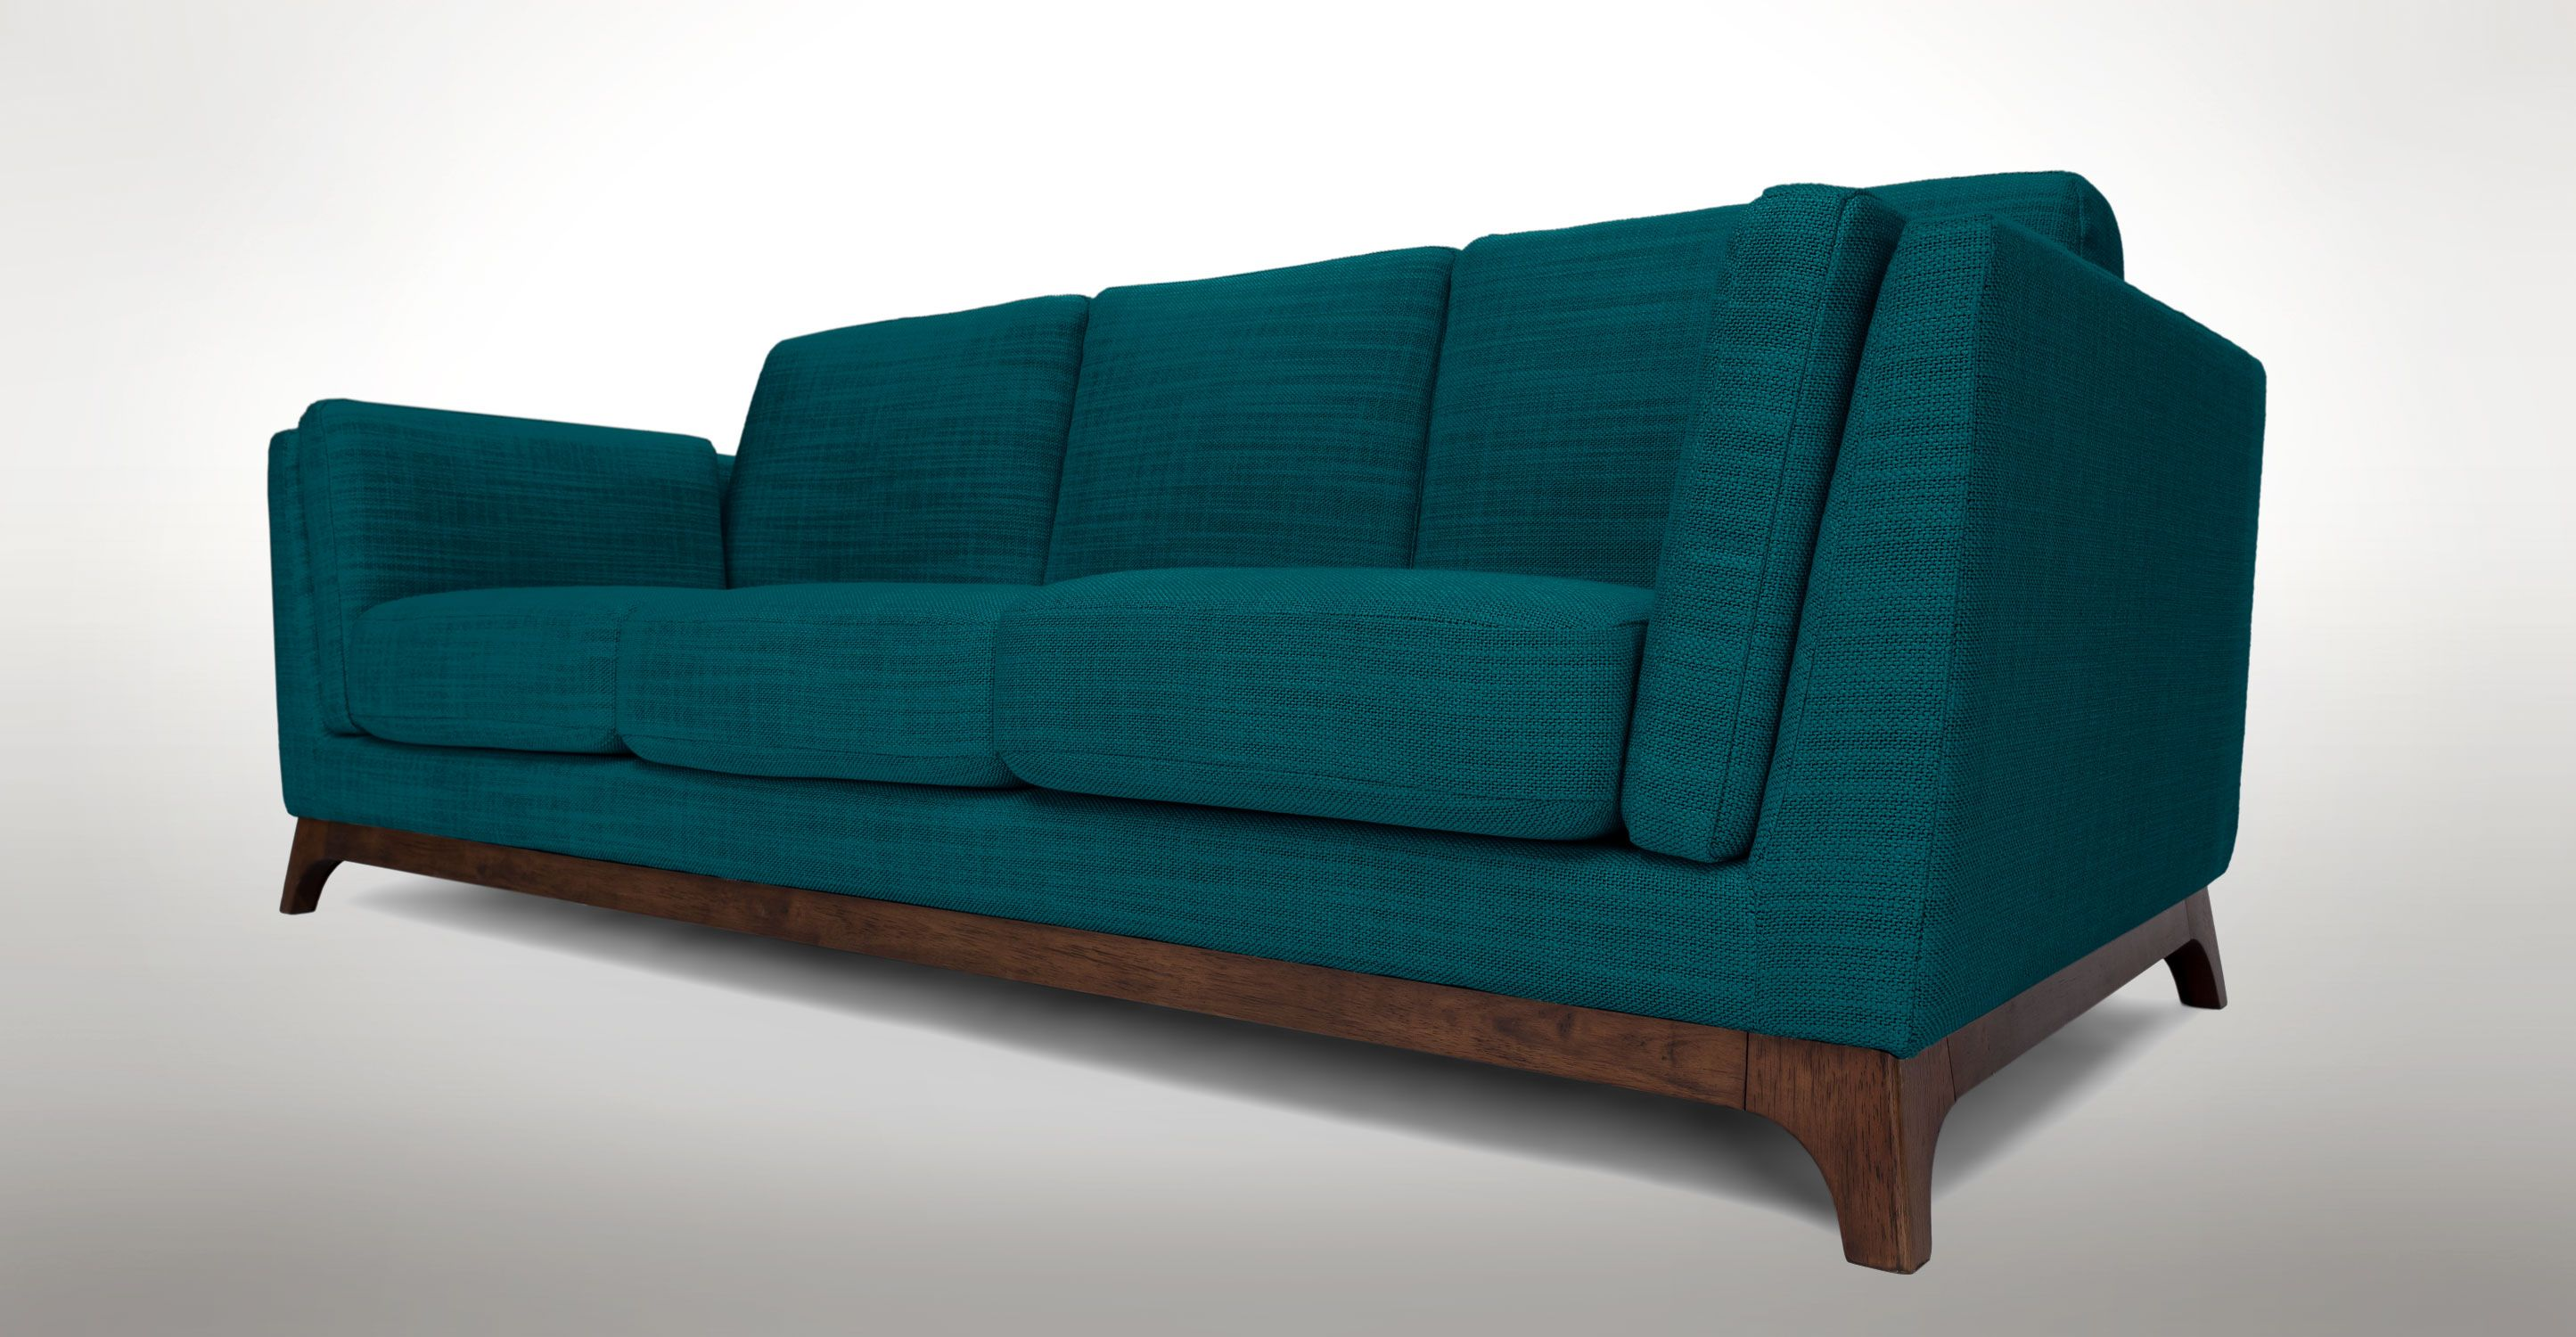 couch cushions on century design album lxegoxa mid couches product and finished imgur build frame modern gallery